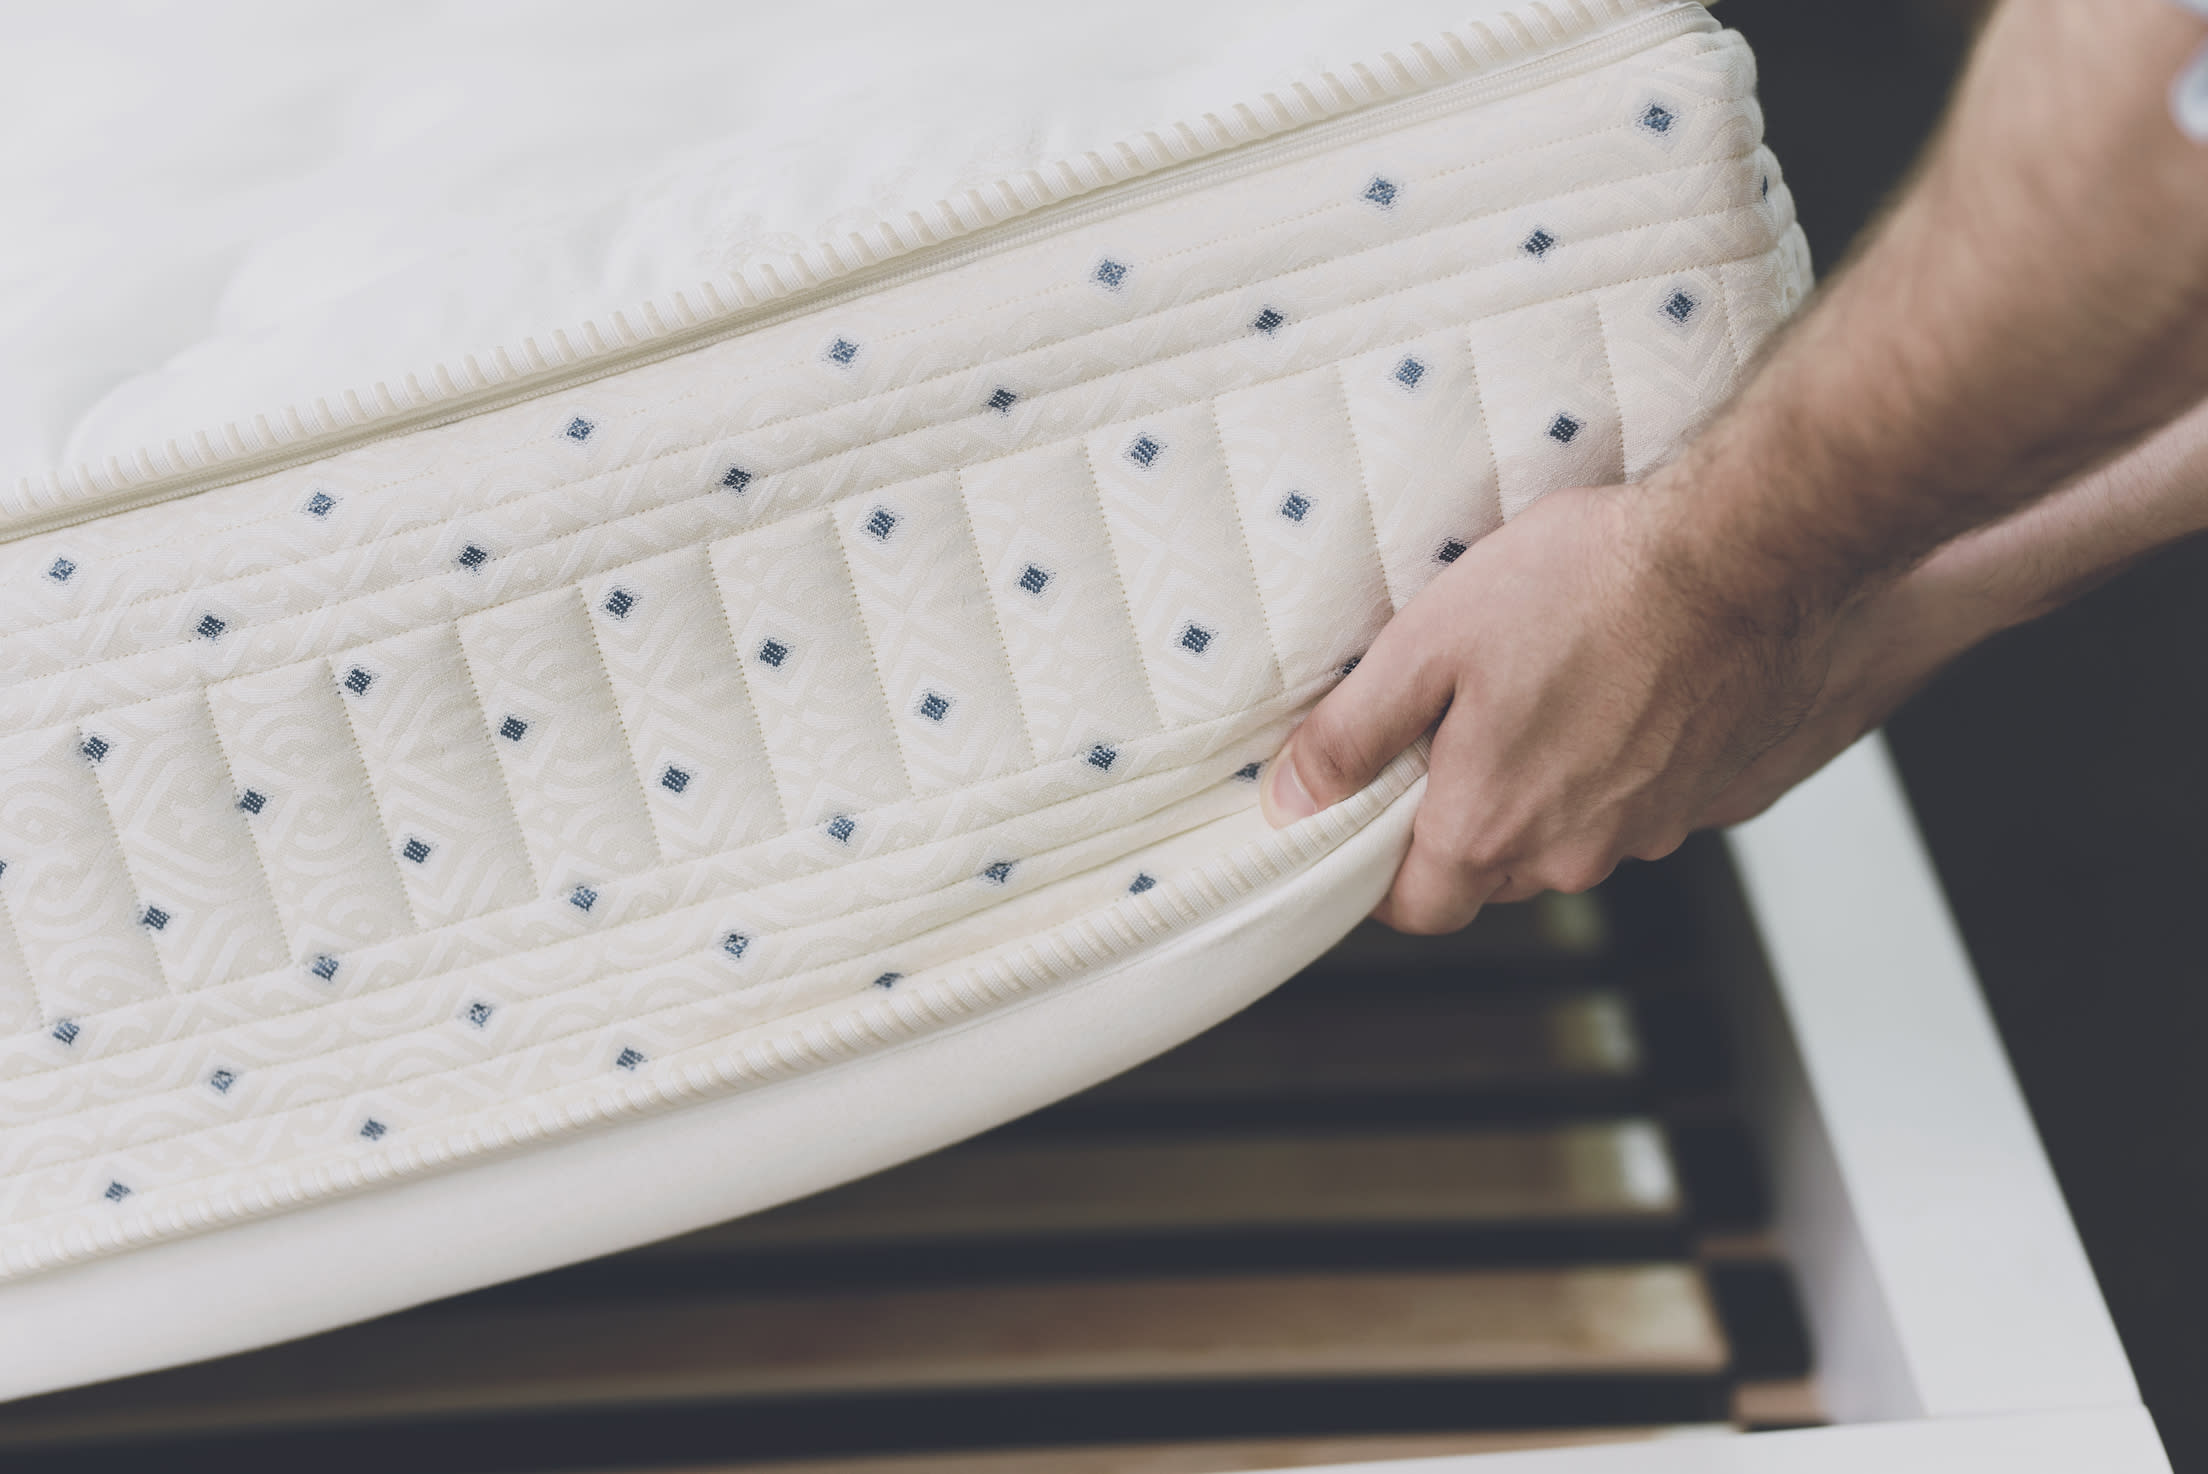 How to Move a Mattress: A Step-By-Step Guide